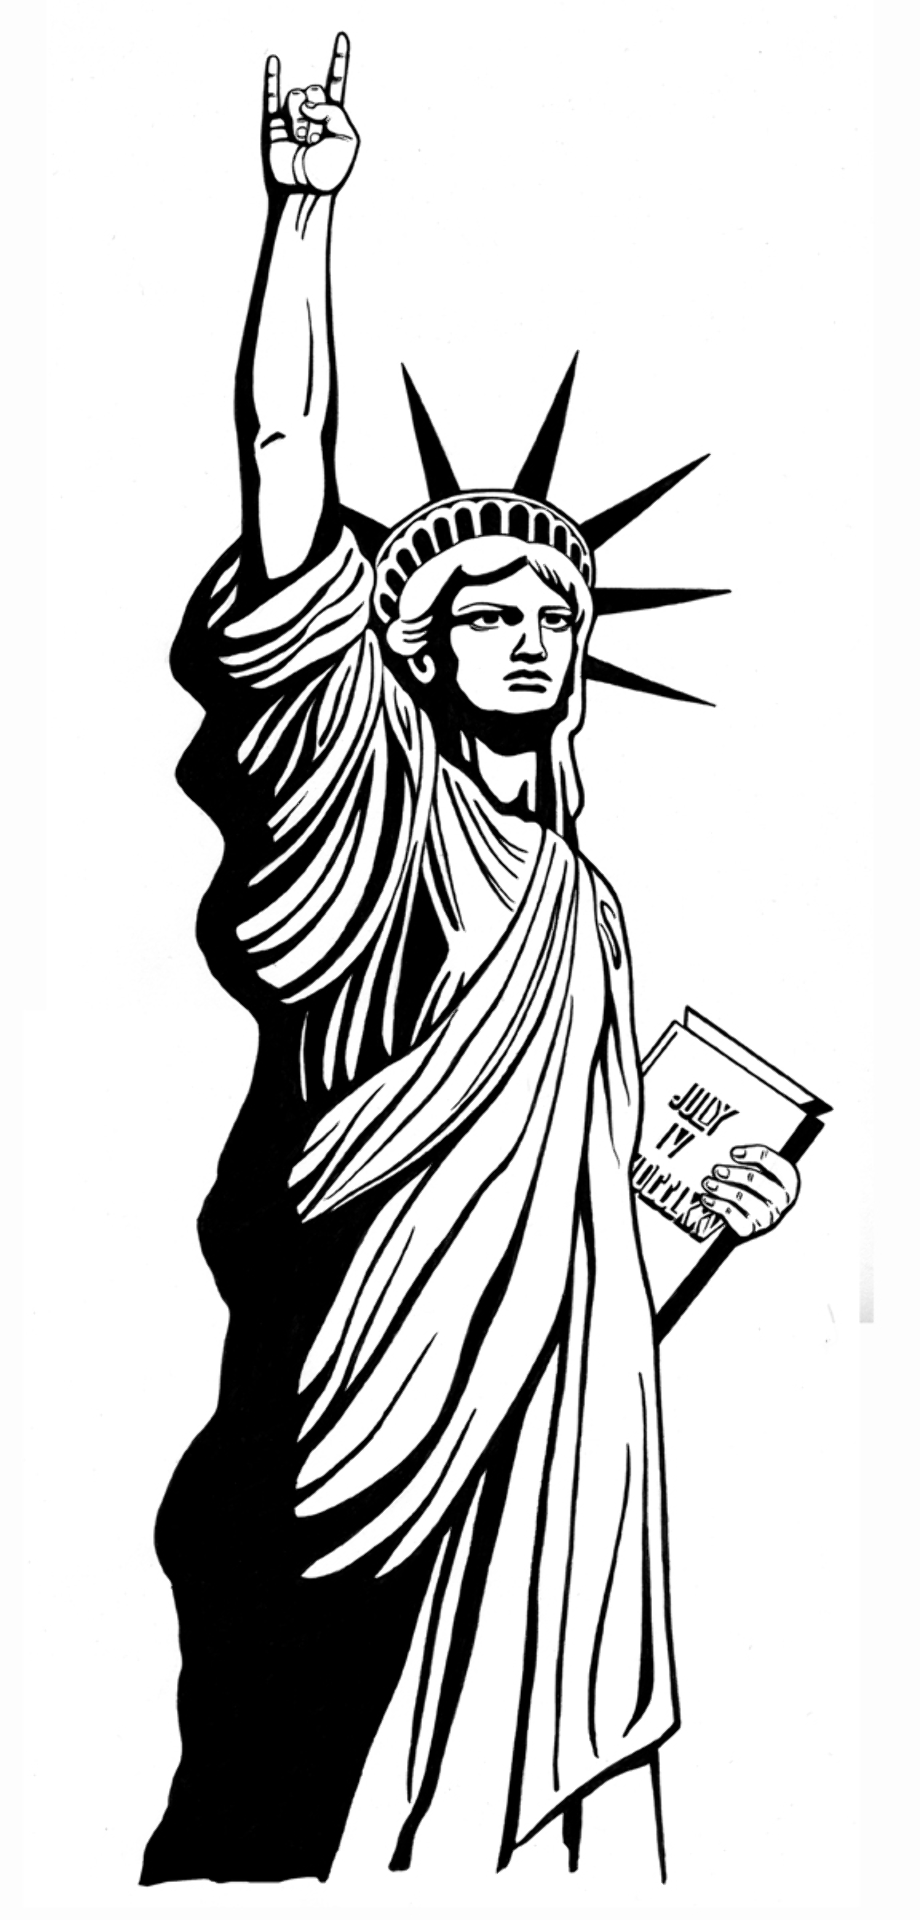 statue of liberty outline download high quality statue of liberty clipart template liberty of outline statue